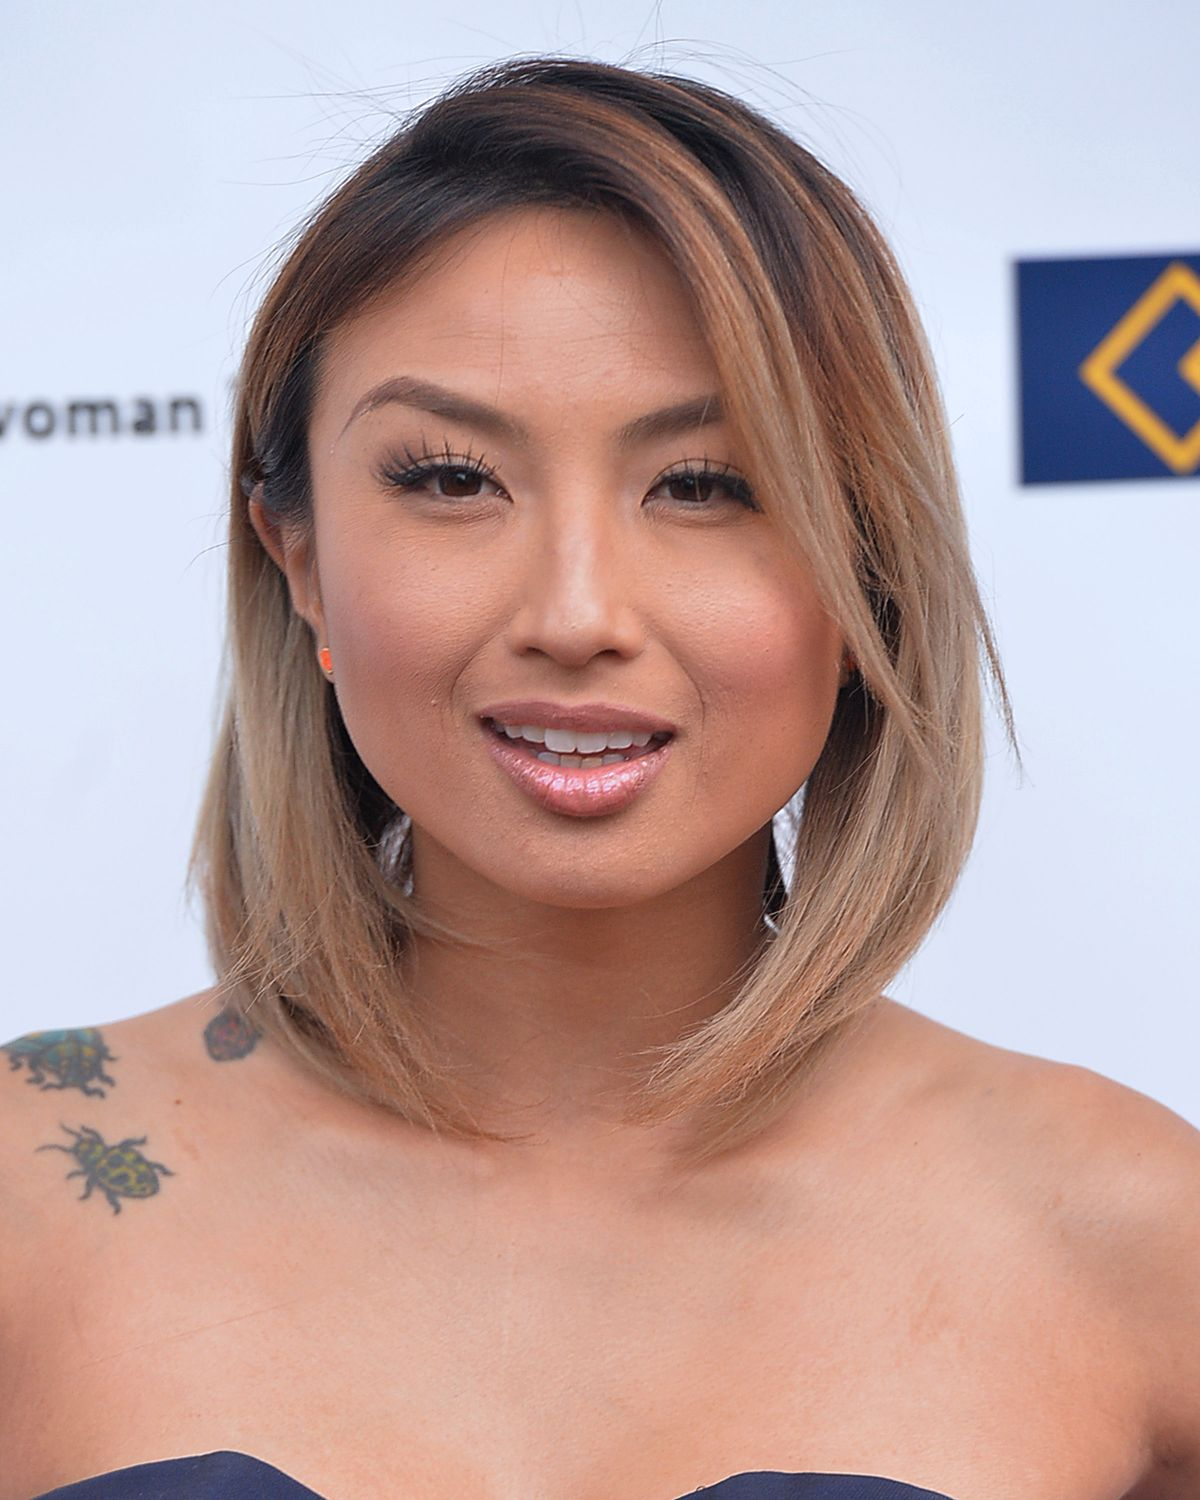 jeannie mai eyebrowsjeannie mai instagram, jeannie mai story, jeannie mai husband, jeannie mai oscars, jeannie mai eyebrows, jeannie mai, jeannie mai tattoos, jeannie mai the real, jeannie mai how do i look, jeannie mai net worth, jeannie mai married, jeannie mai bio, jeannie mai feet, jeannie mai and brenda song, jeannie mai freddy harteis, jeannie mai twitter, jeannie mai mom, jeannie mai disney, jeannie mai measurements, jeannie mai website